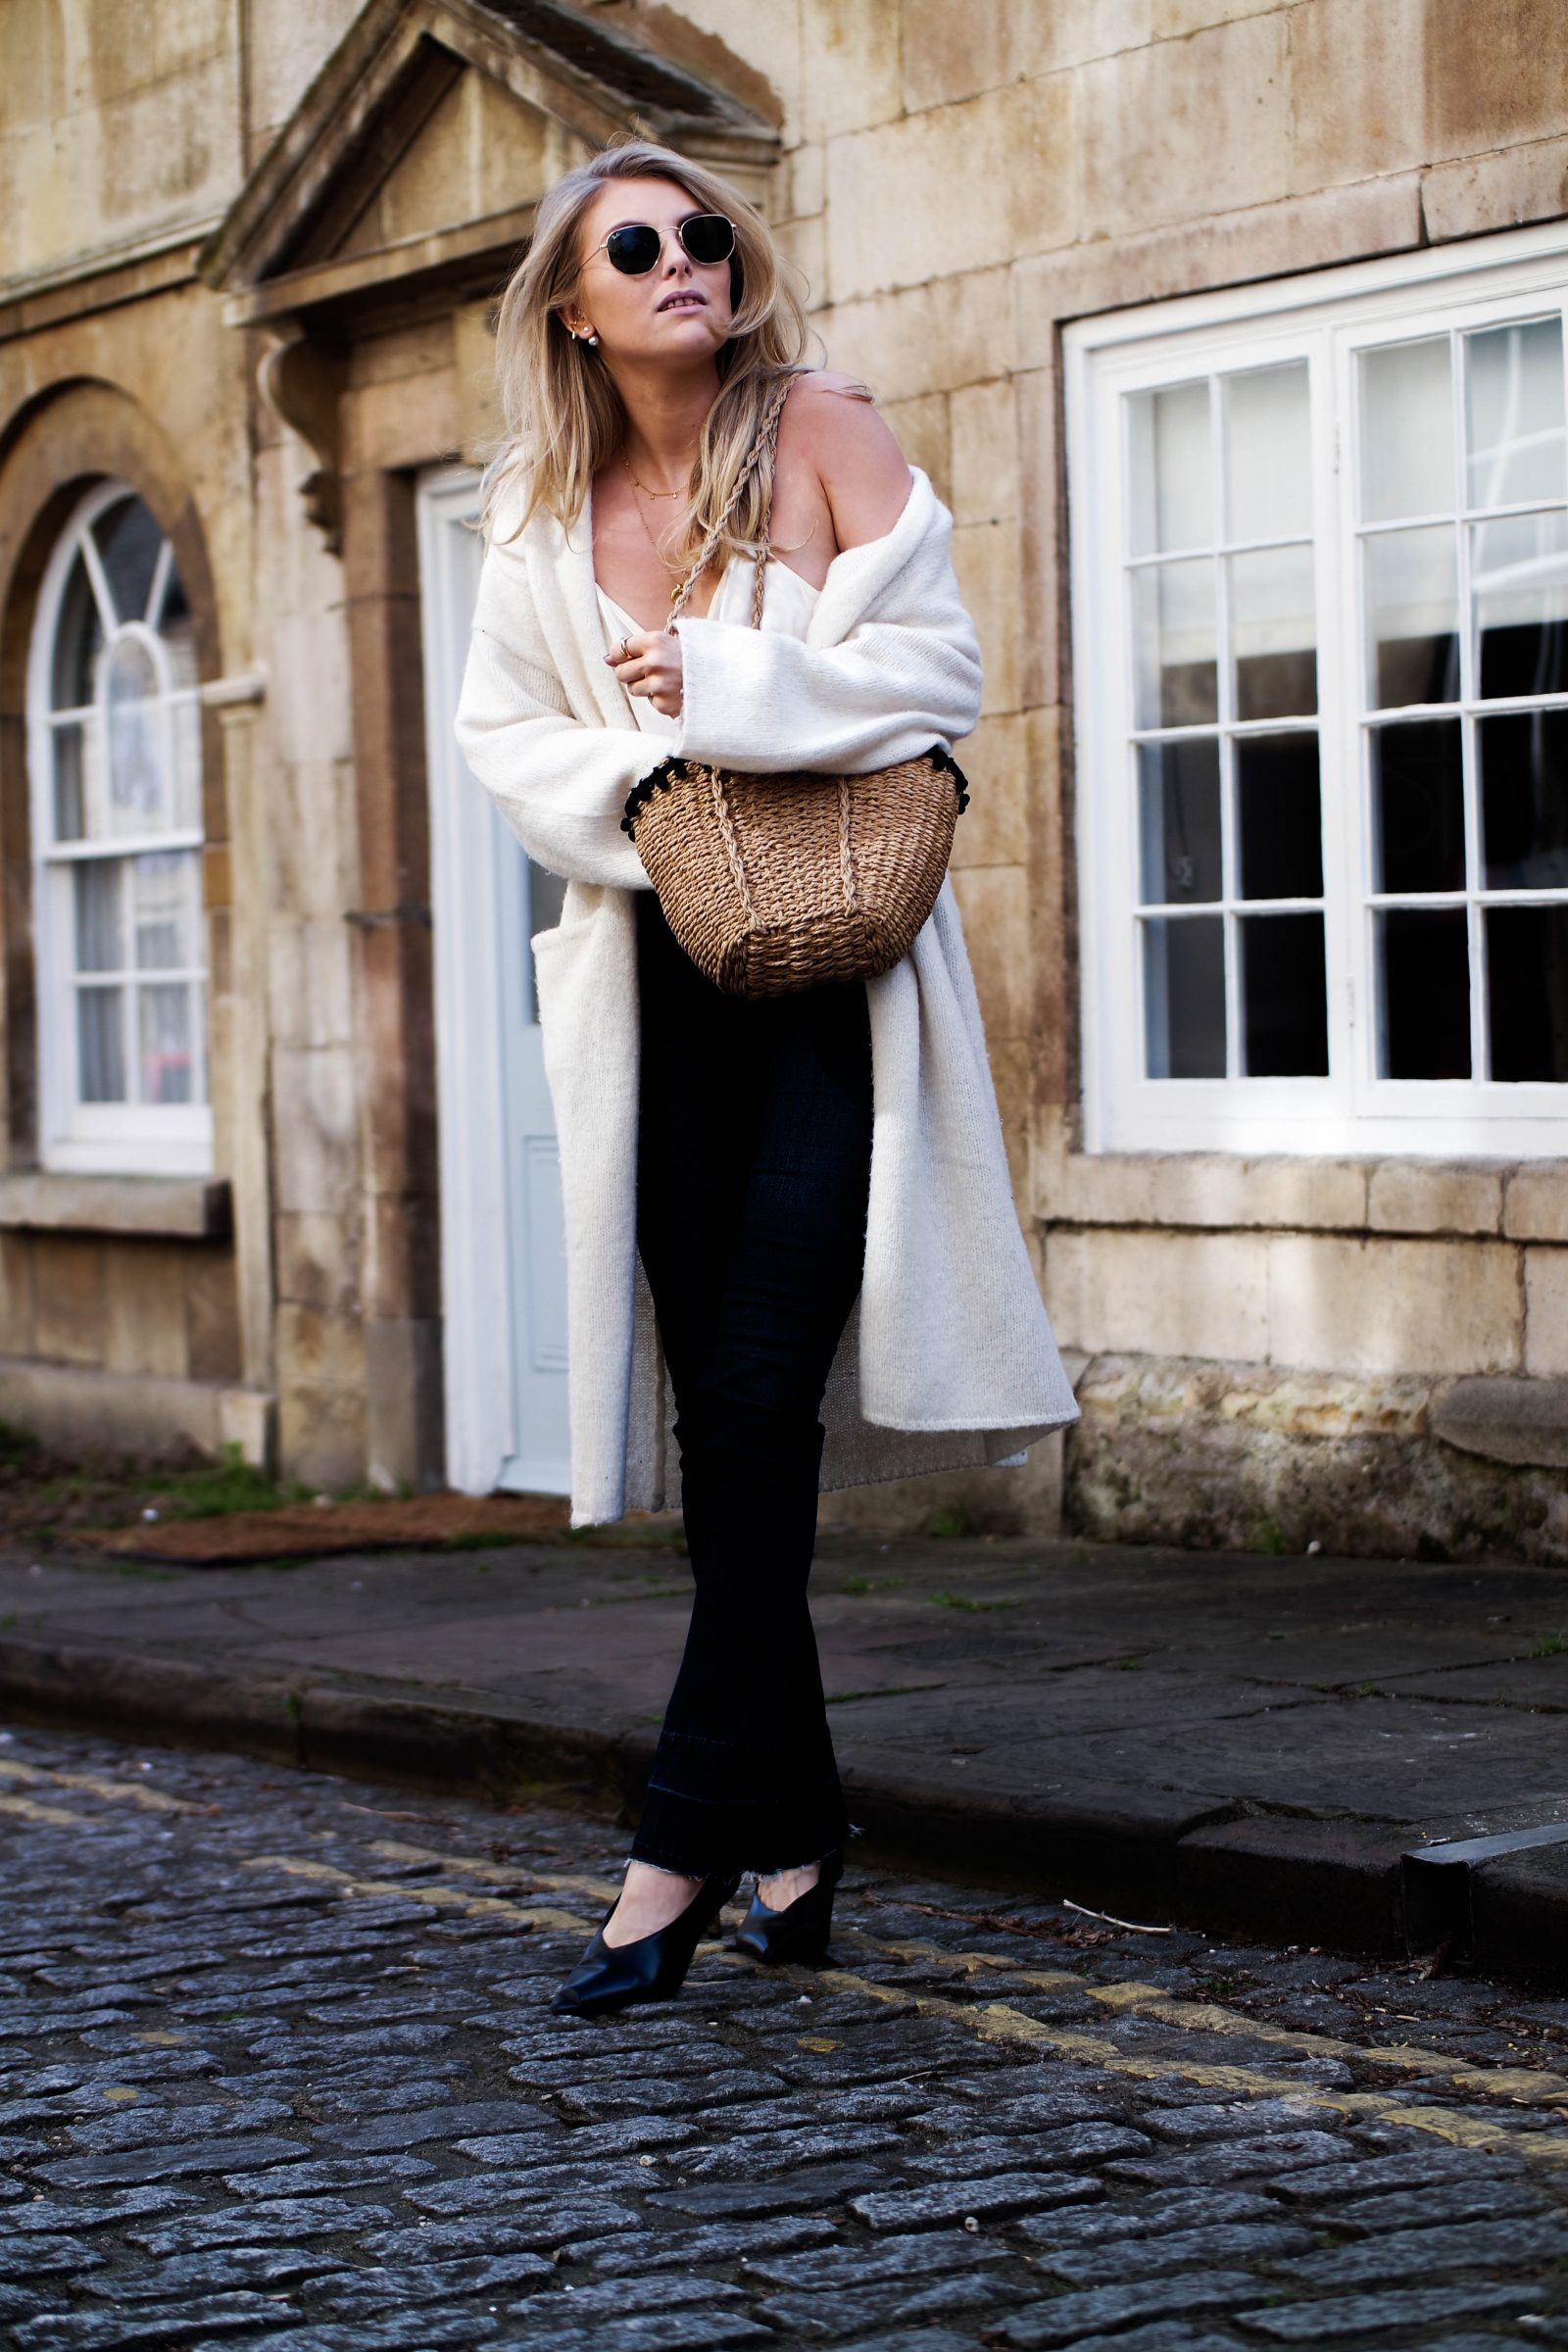 The New Denim - How To Wear Flares - Fashion Blogger Street Style